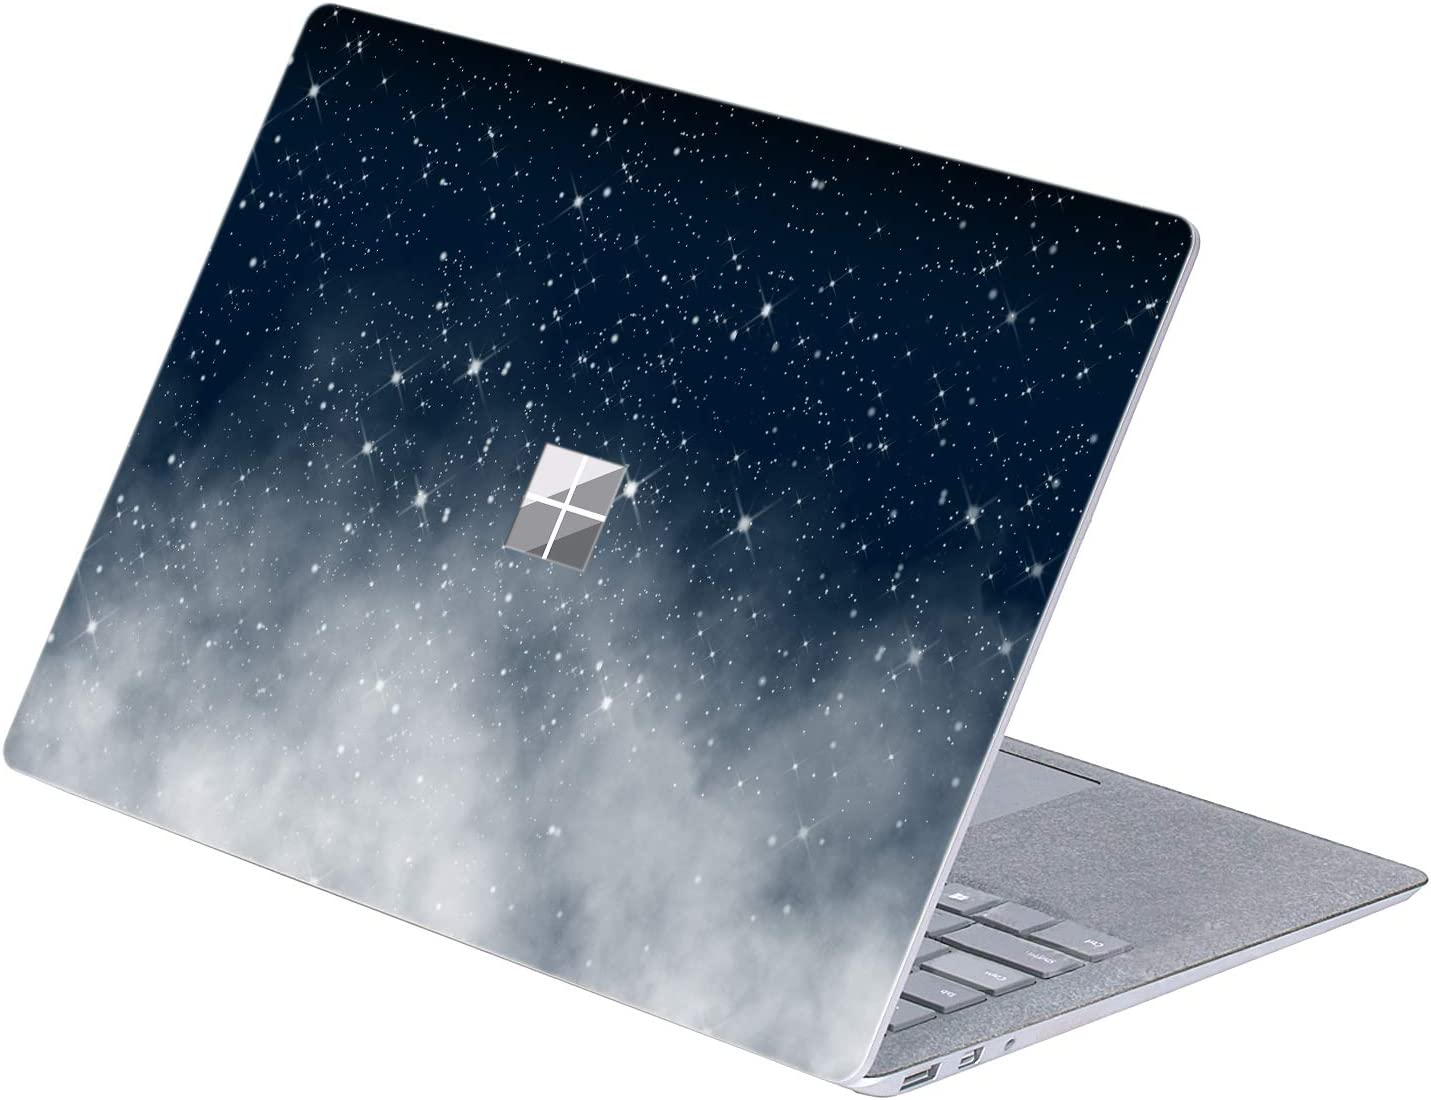 "MasiBloom 1 PCS Protective Decal Sticker Anti-Scratch Vinyl Laptop Cover Skin for 13"" 13.5 inch Microsoft Surface Laptop 3 & 2 & 1 (2019 2018 2017 Released) (for 13.5"" Surface Laptop, Starry Sky)"